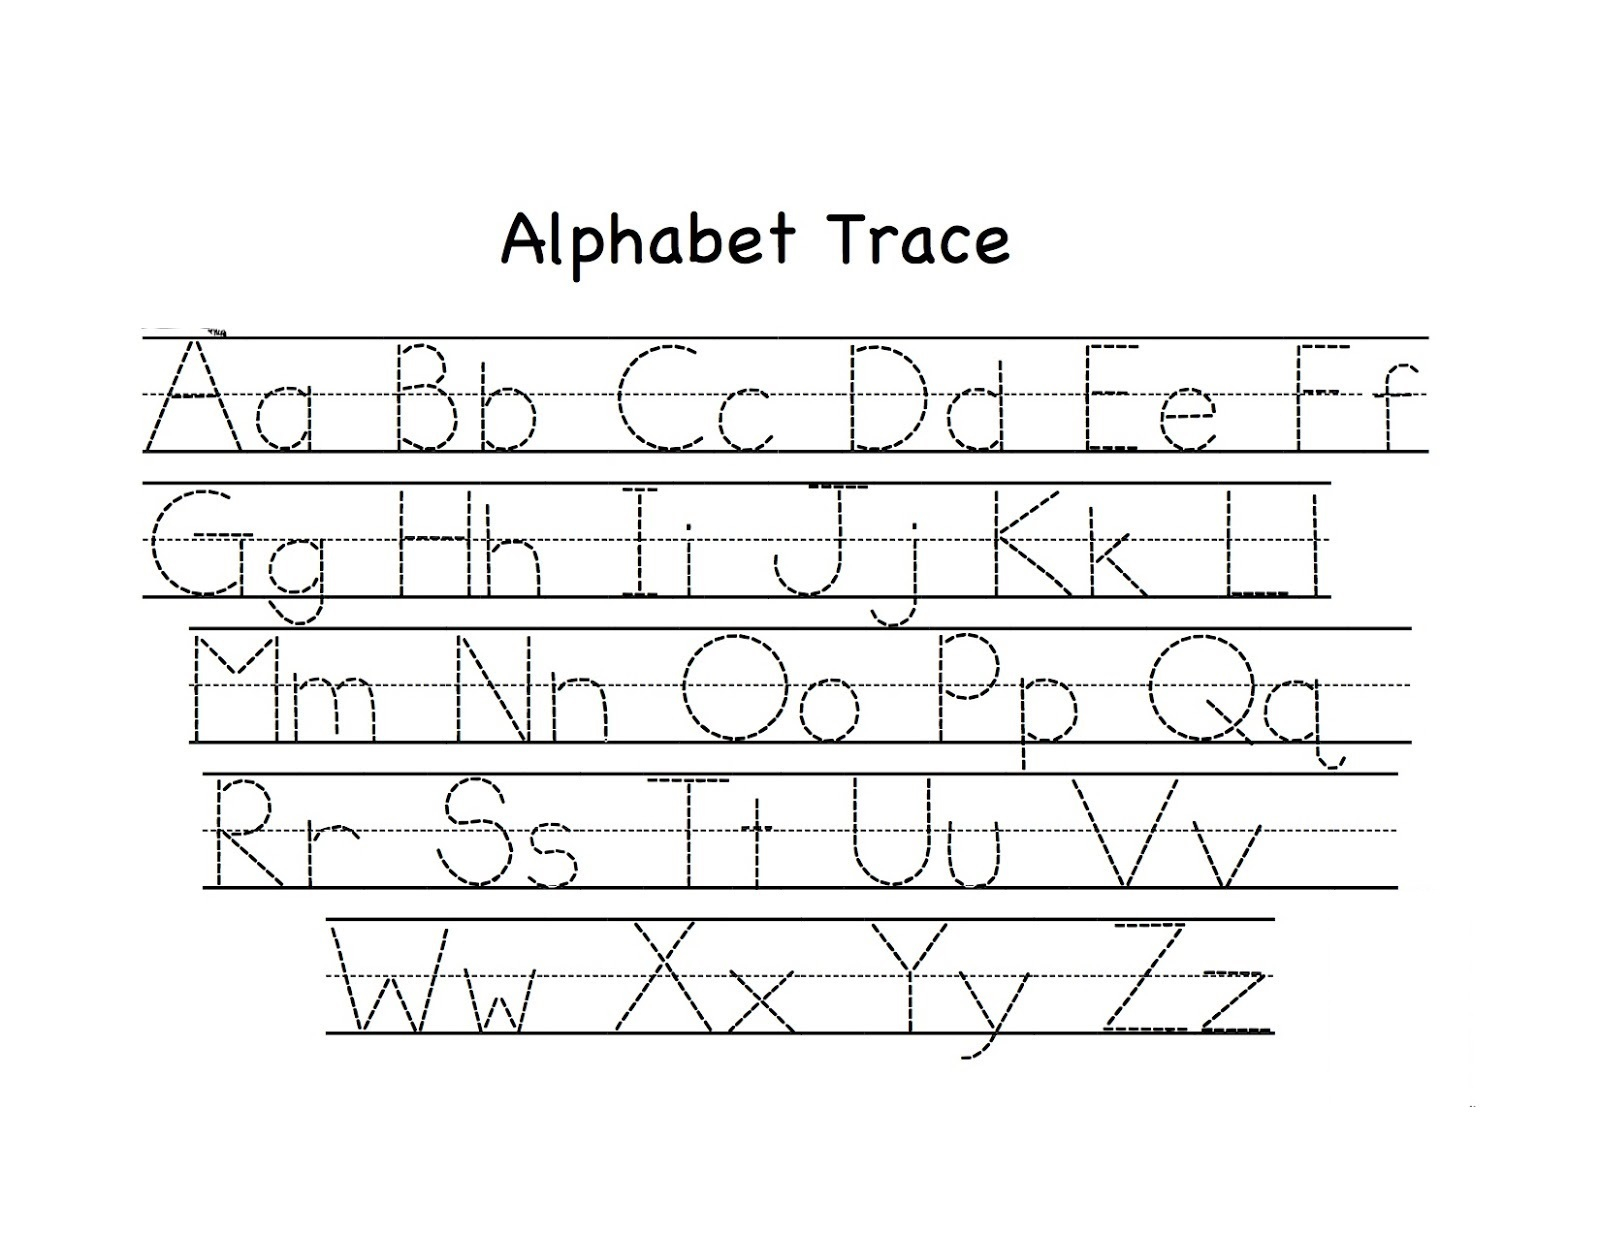 Awesome Preschooler Writing Worksheets Free First Grade within Pre-K Alphabet Writing Worksheets